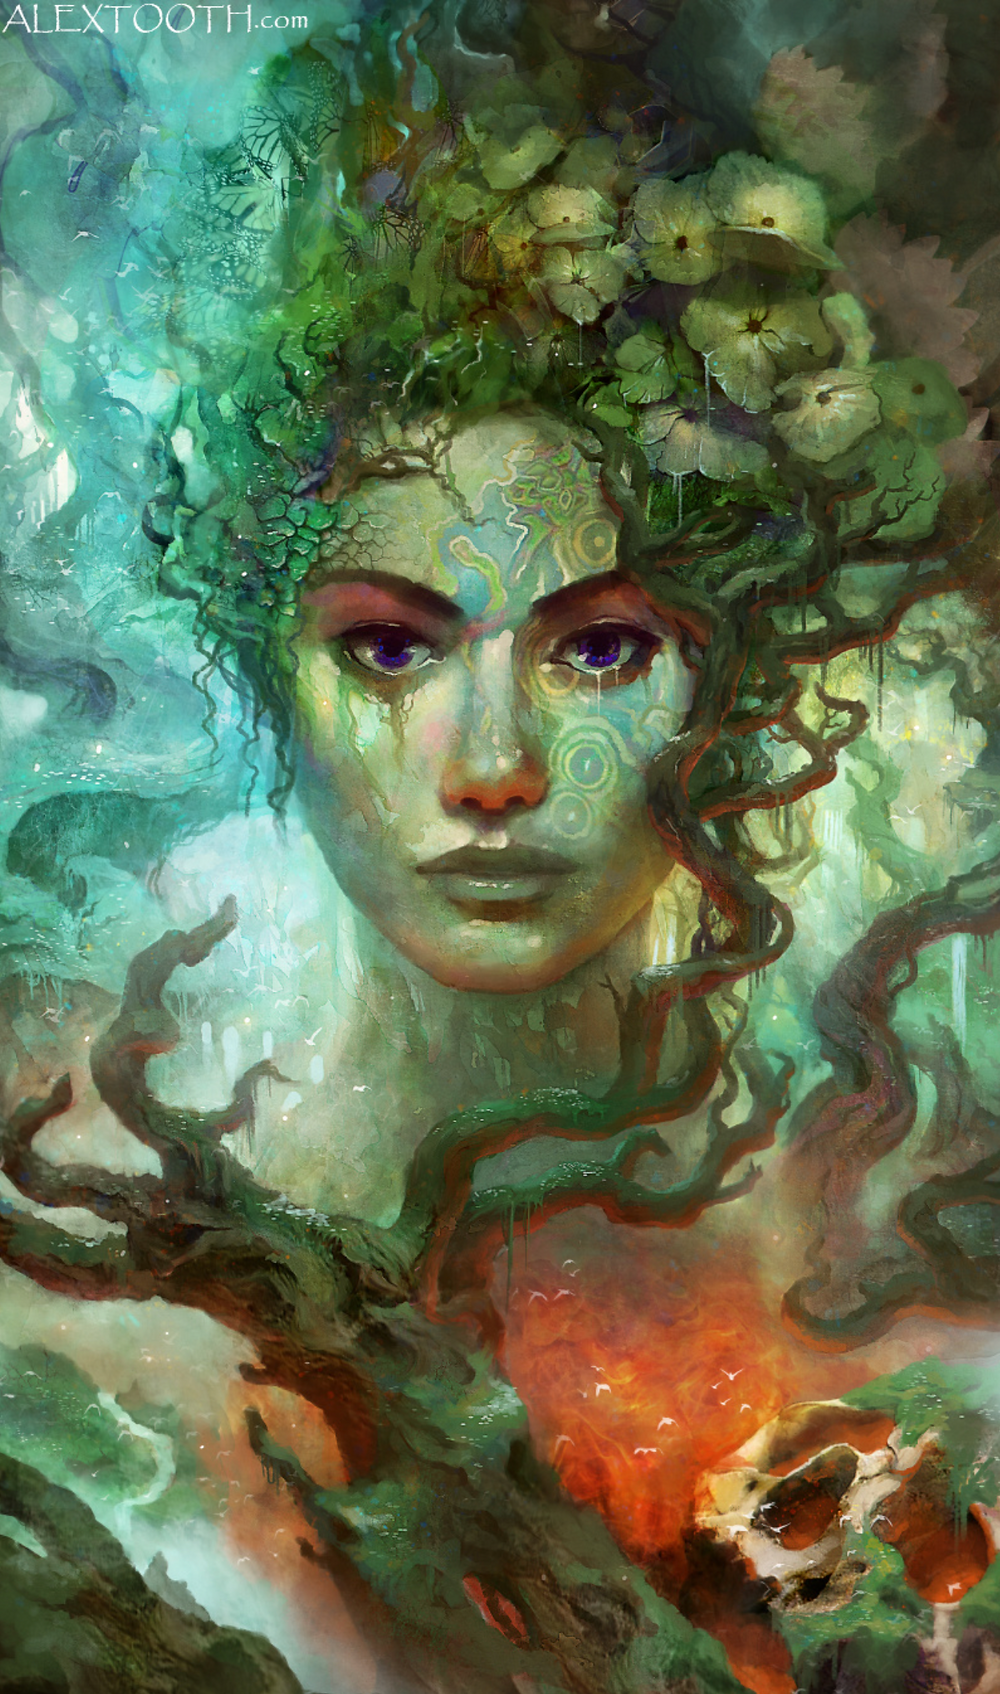 Psychedlic Picture of woman in greens and blues with a sultry look on her face and flowers in her hair